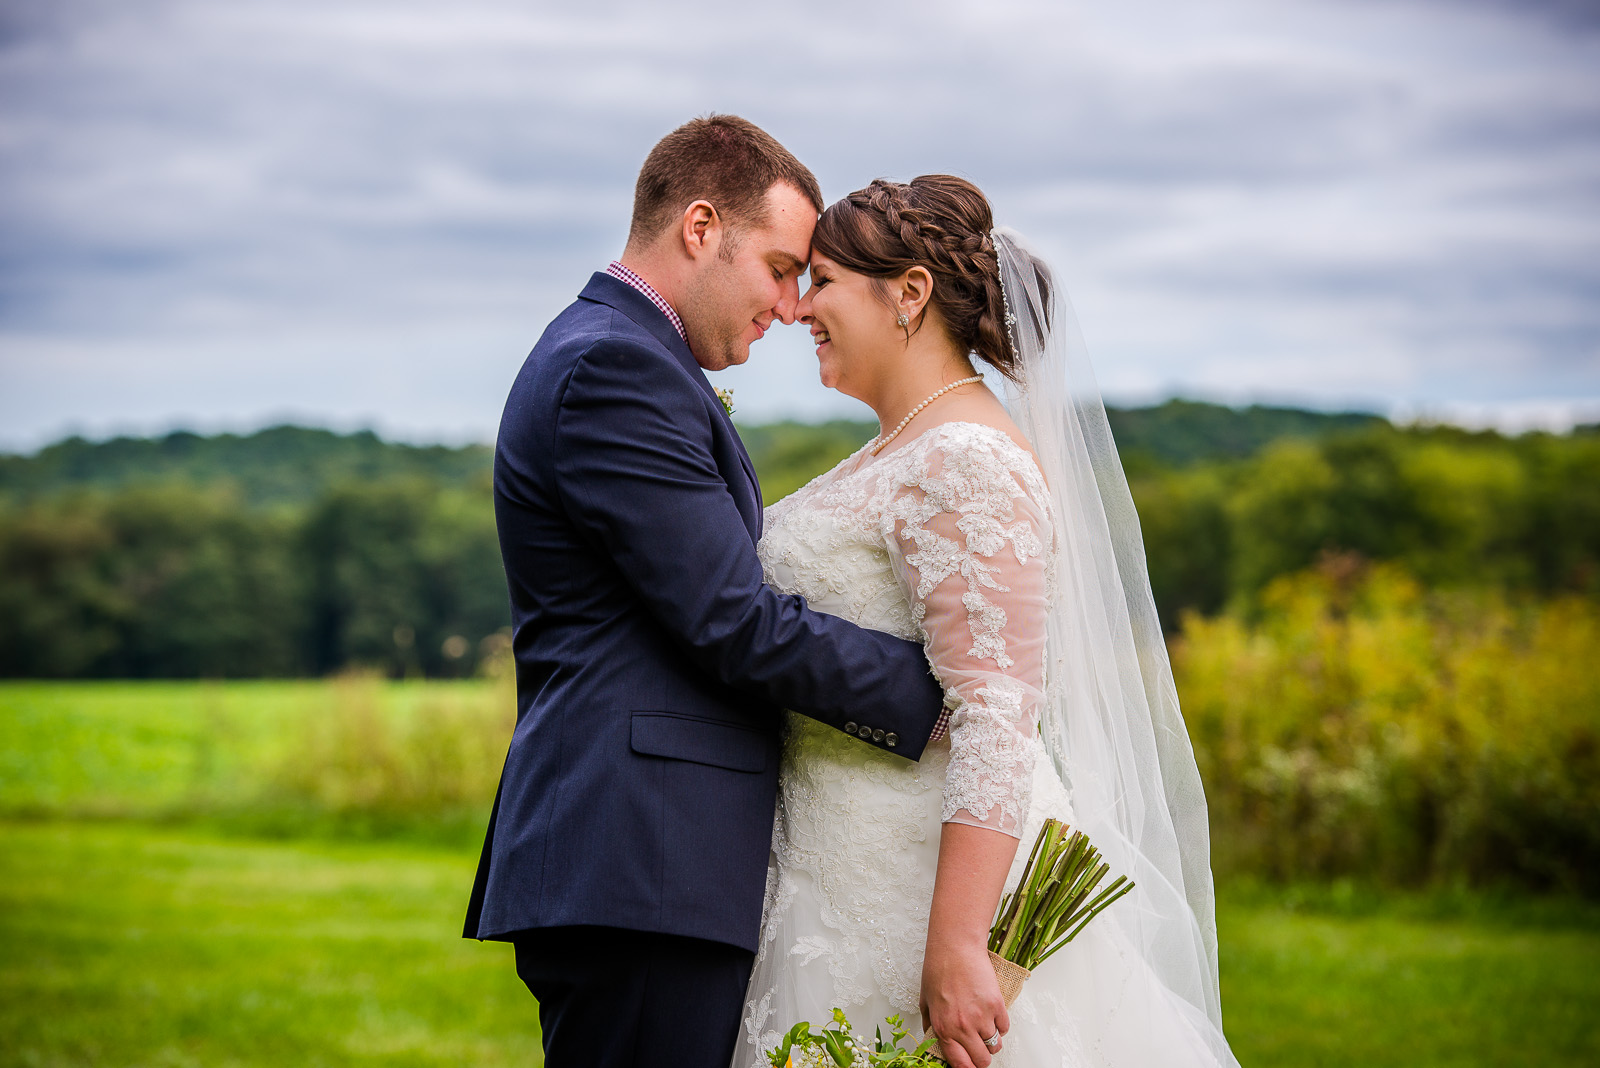 Eric_and_Christy_Photography_Blog_2018_Portraits-1